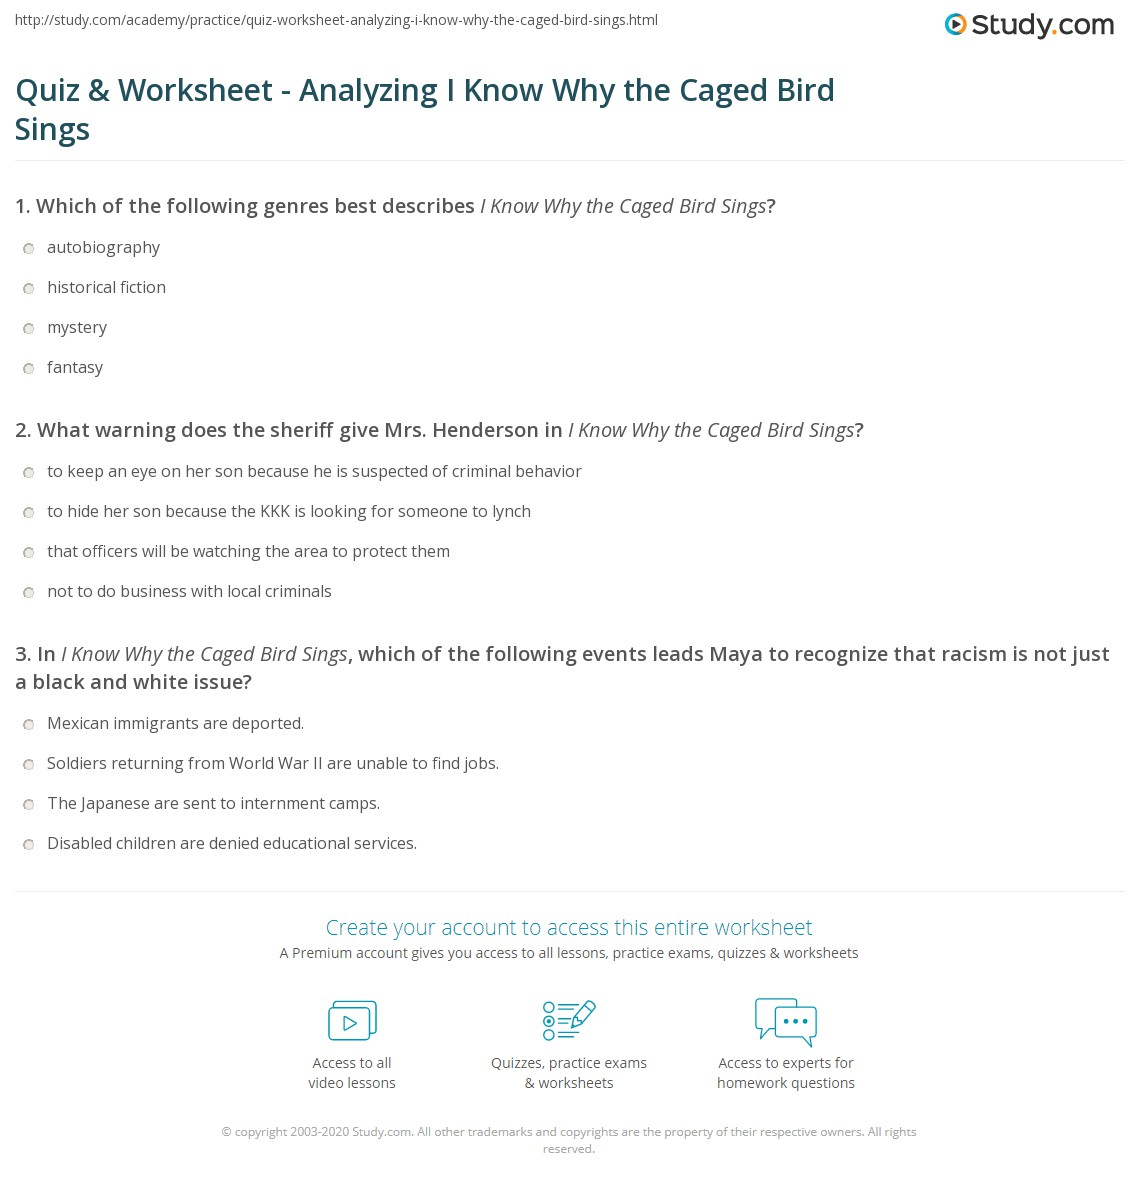 quiz worksheet analyzing i know why the caged bird sings print i know why the caged bird sings analysis themes worksheet